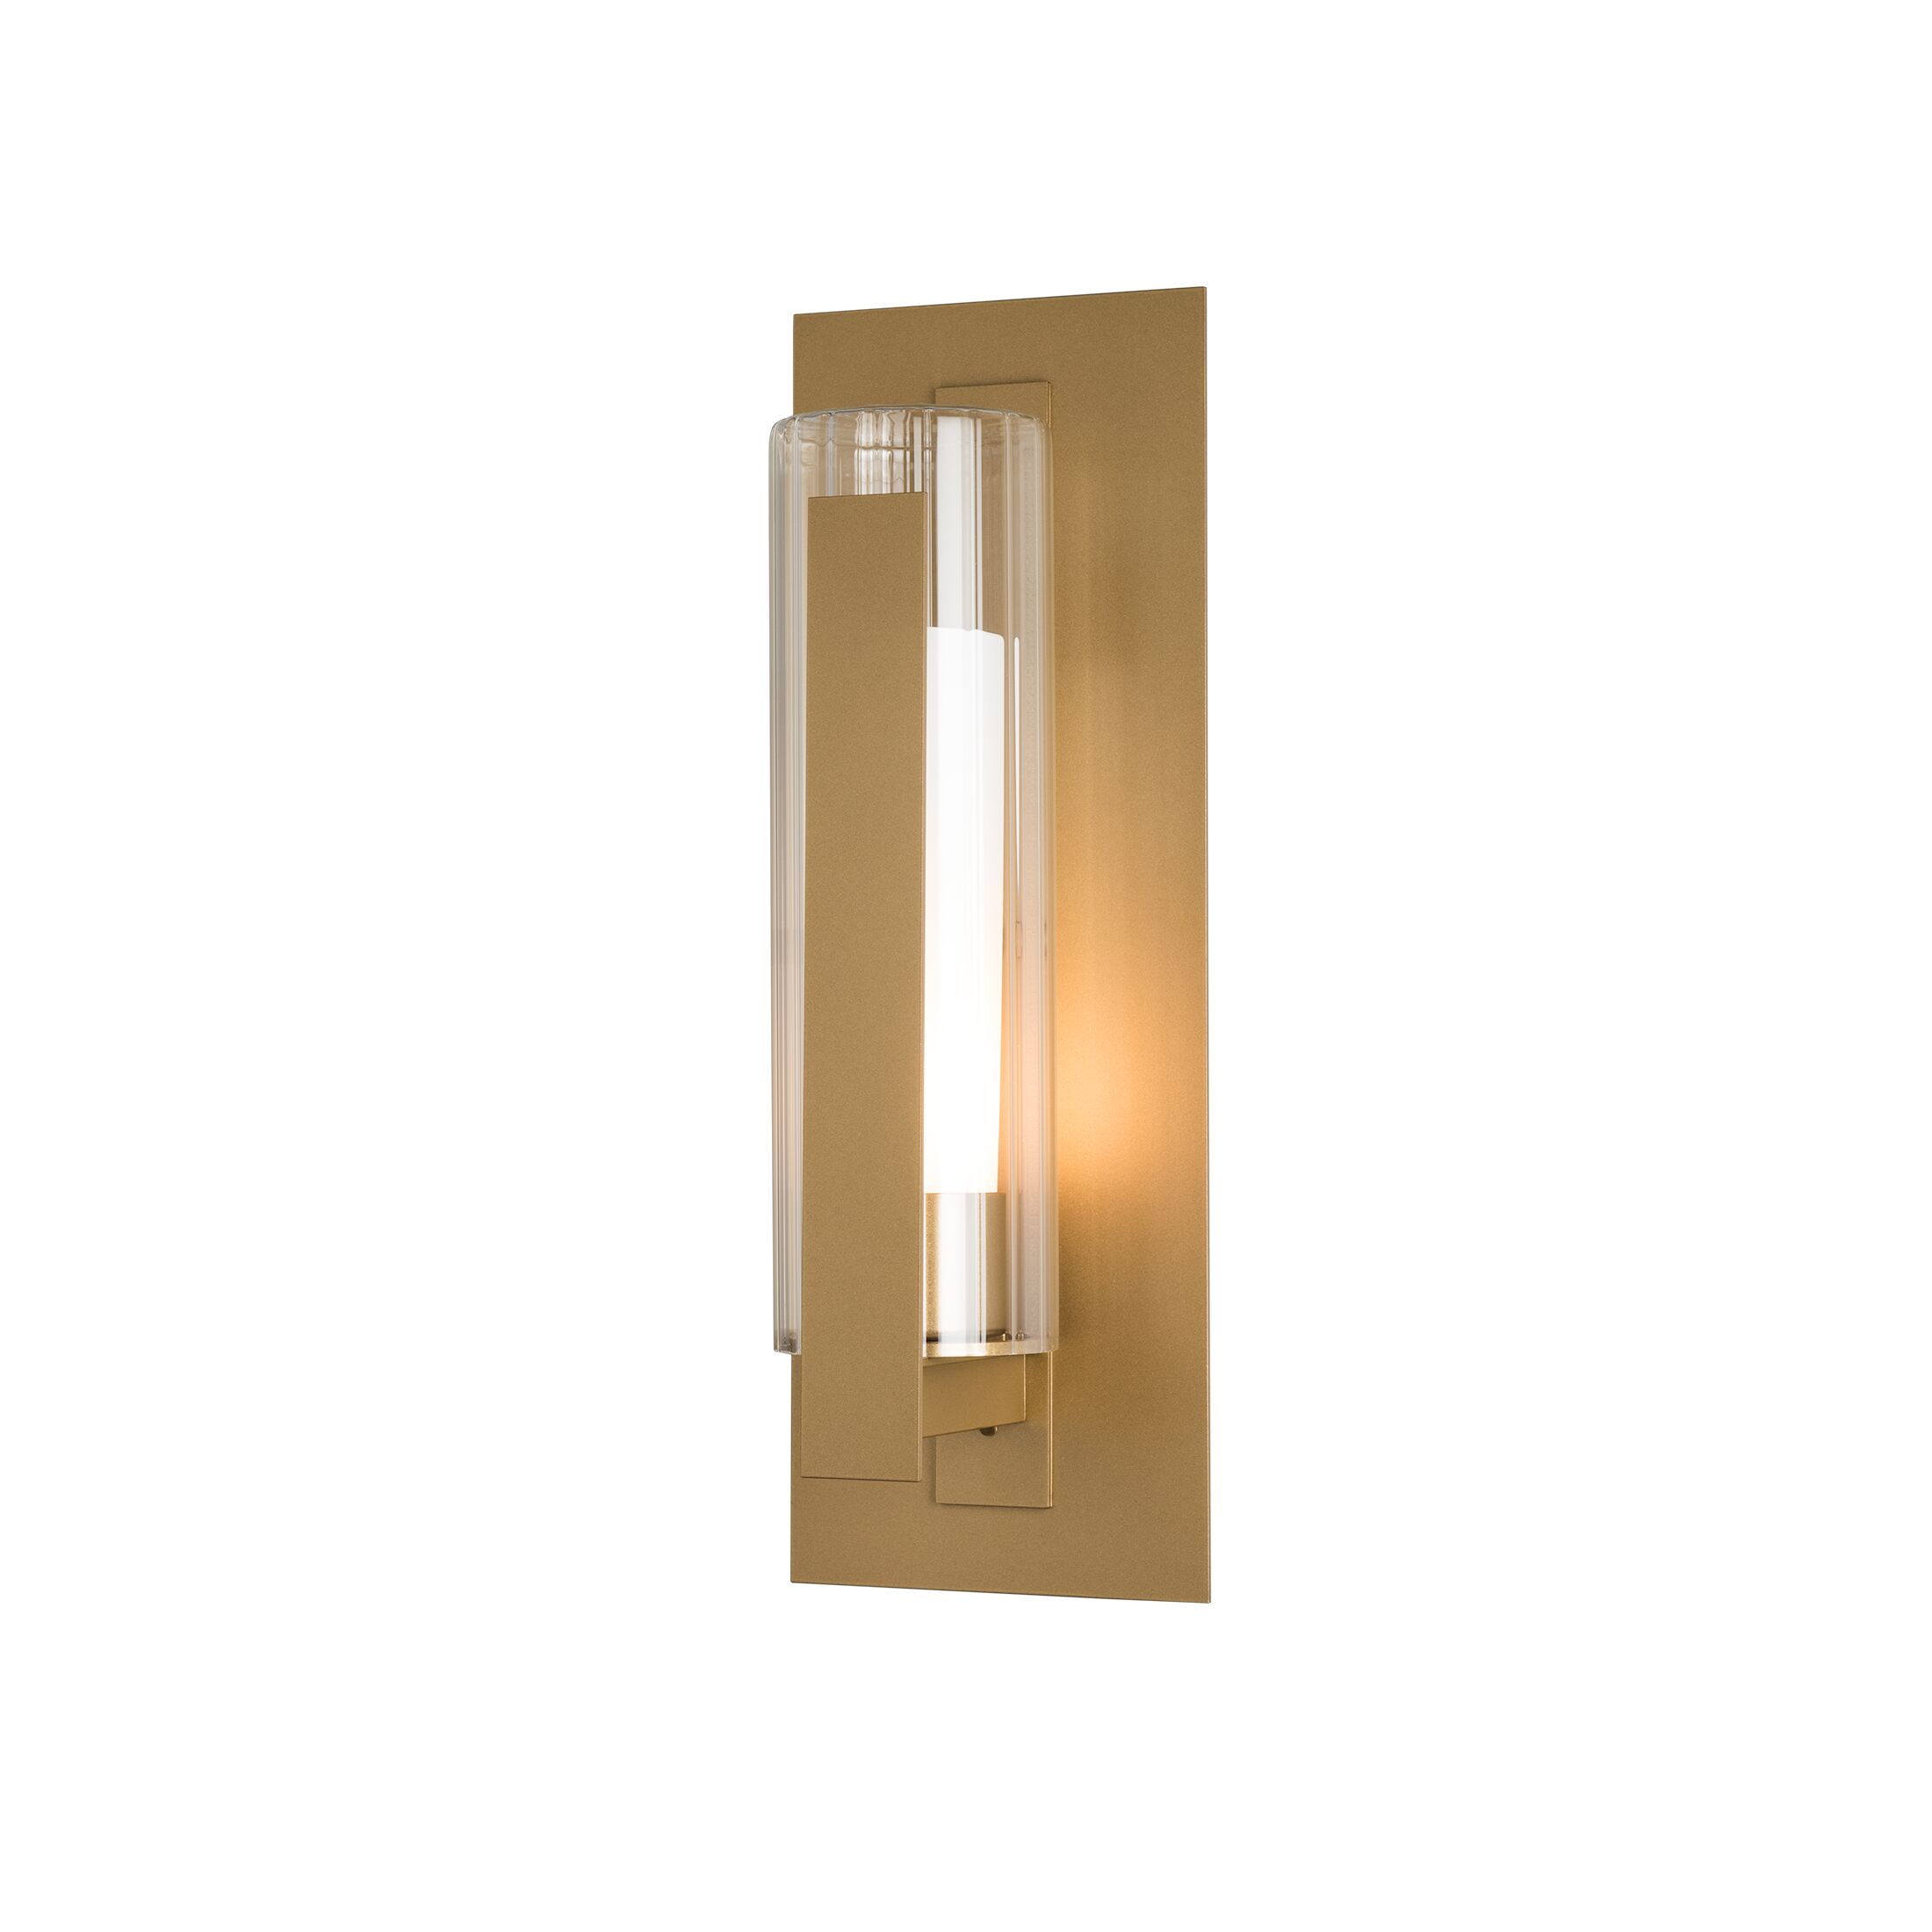 Thumbnail for Vertical Bar Fluted Glass Medium Outdoor Sconce